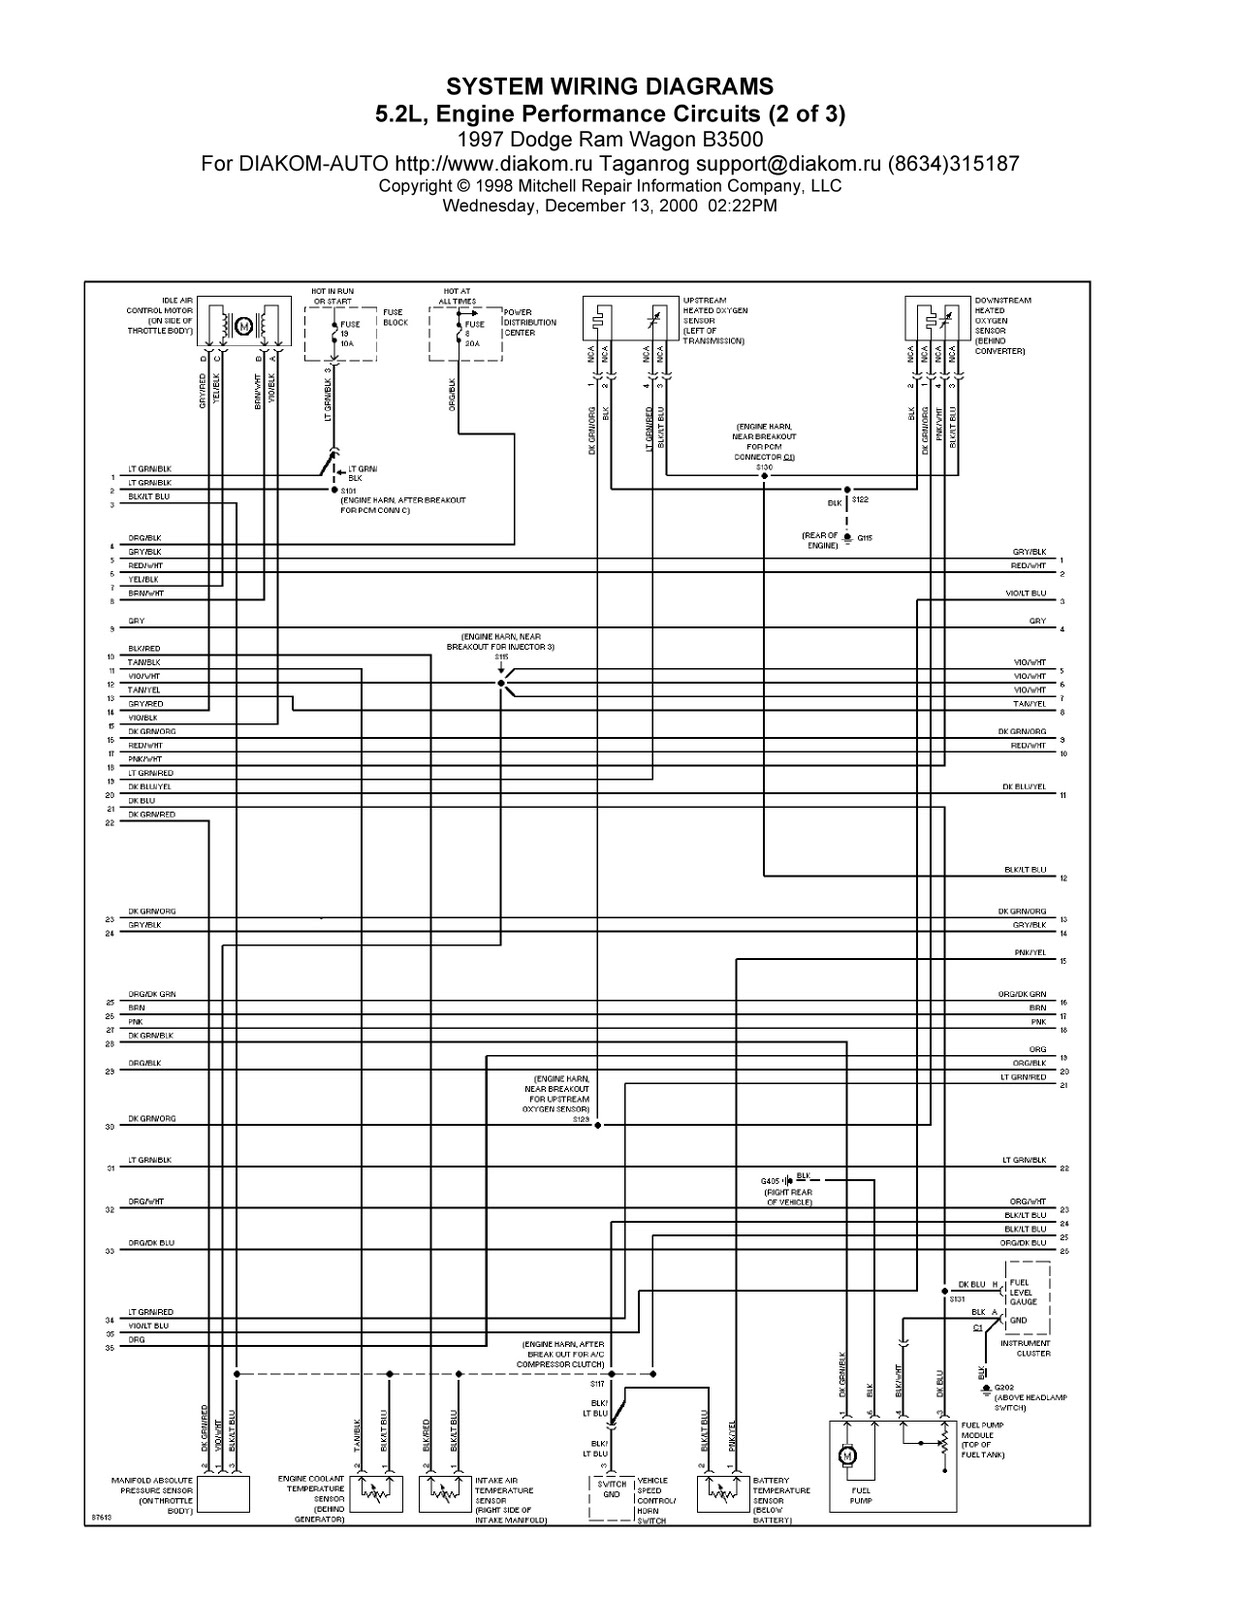 1997 dodge ram dash wiring harness diagram 1997 dodge ram 1500 wiring harness diagram 1997 dodge ram wagon b3500 system wiring diagram 5,2l ... #1